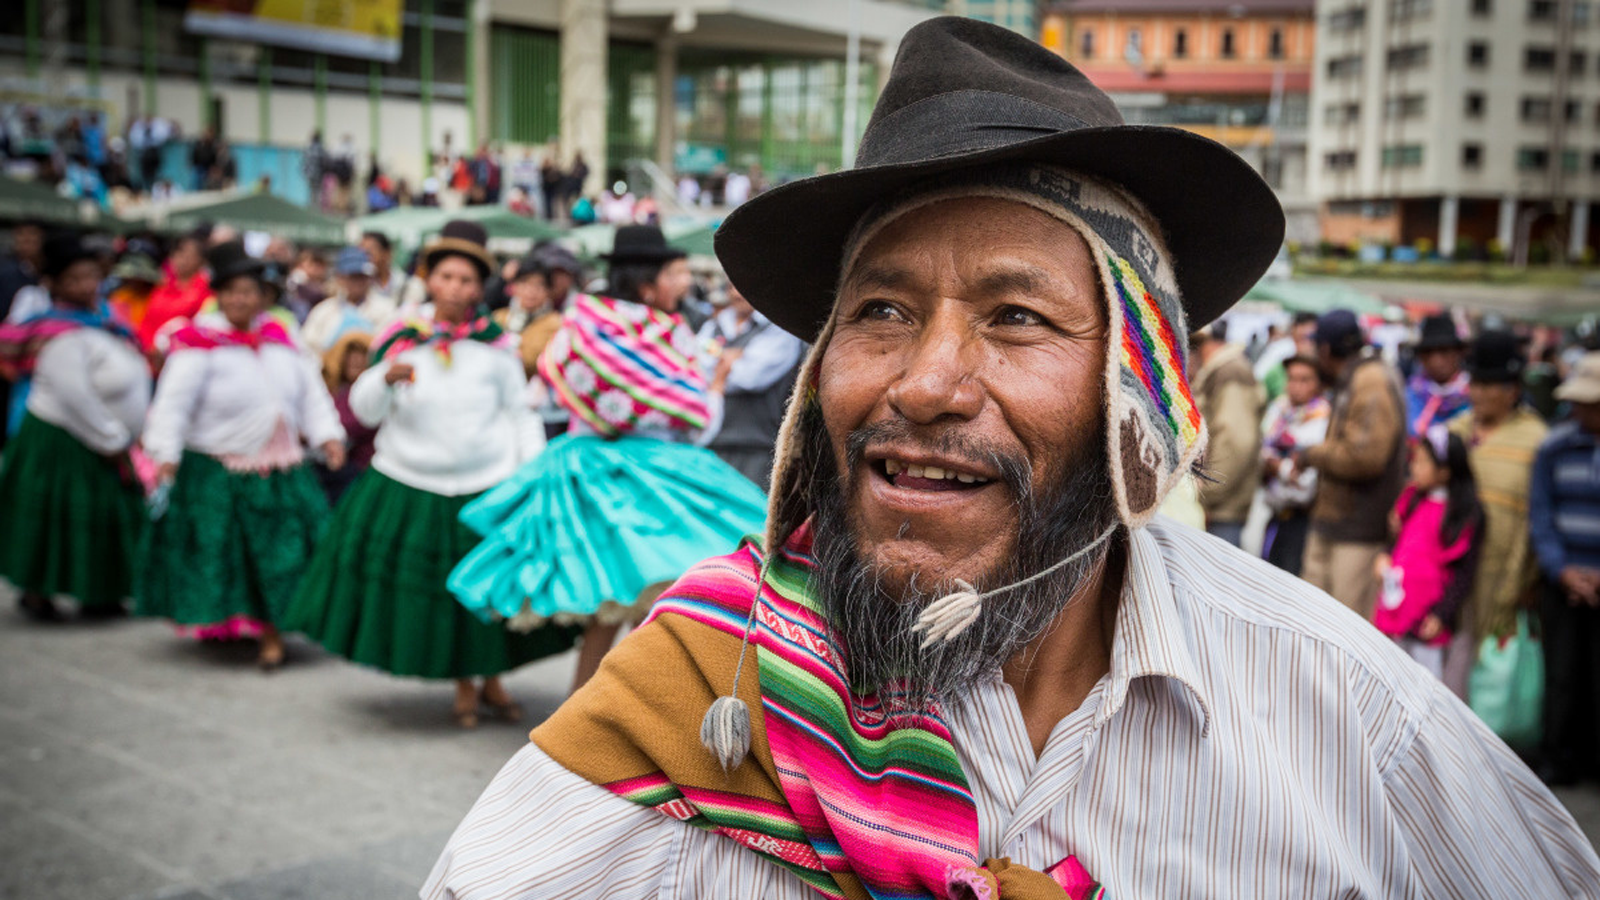 People celebrate the 9th anniversary of the CRPD in Bolivia